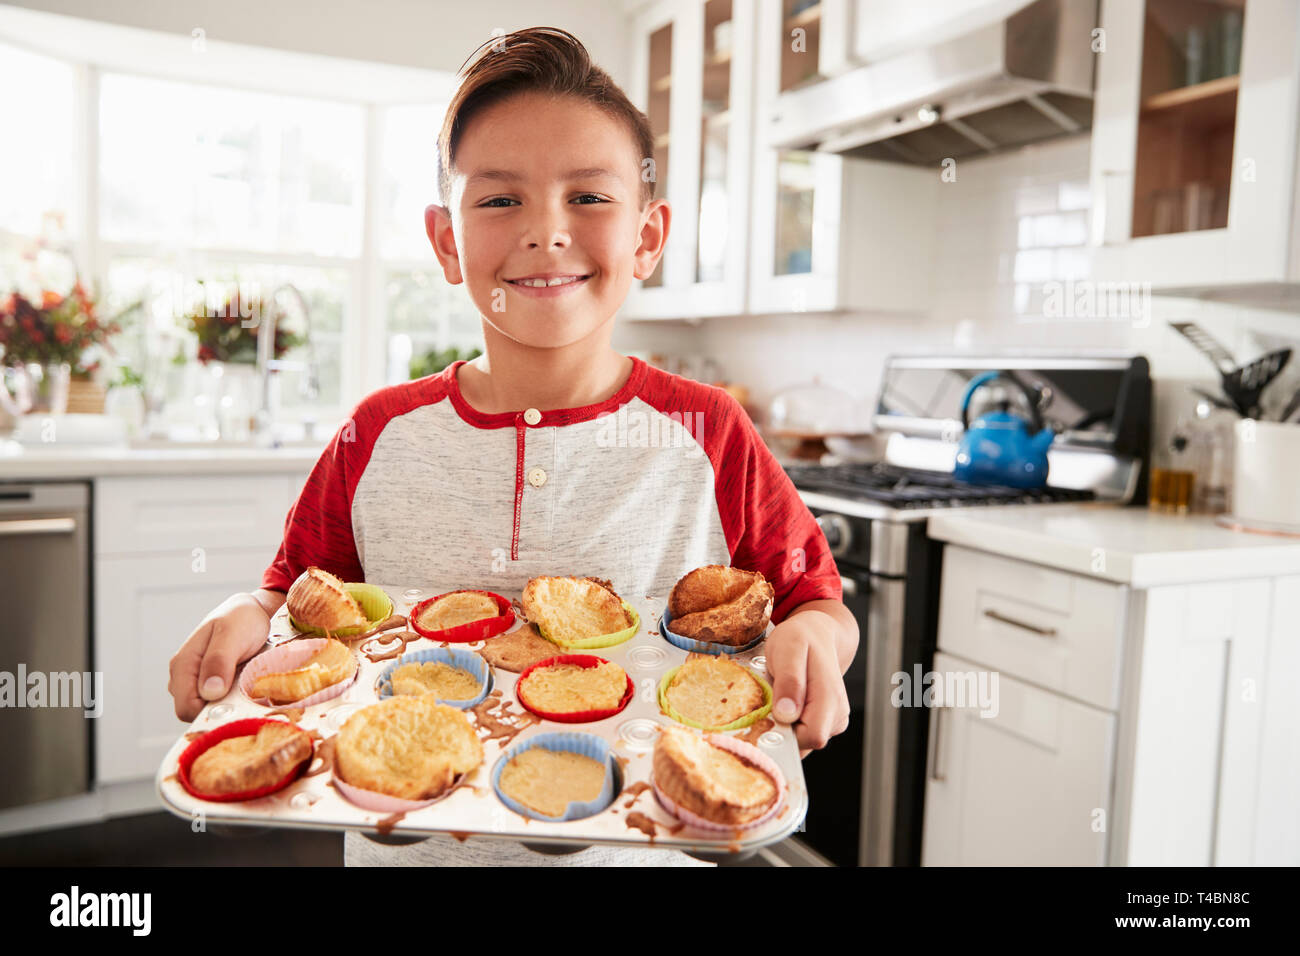 Proud pre-teen Hispanic boy standing in kitchen presenting the cakes he's made to camera, close up - Stock Image